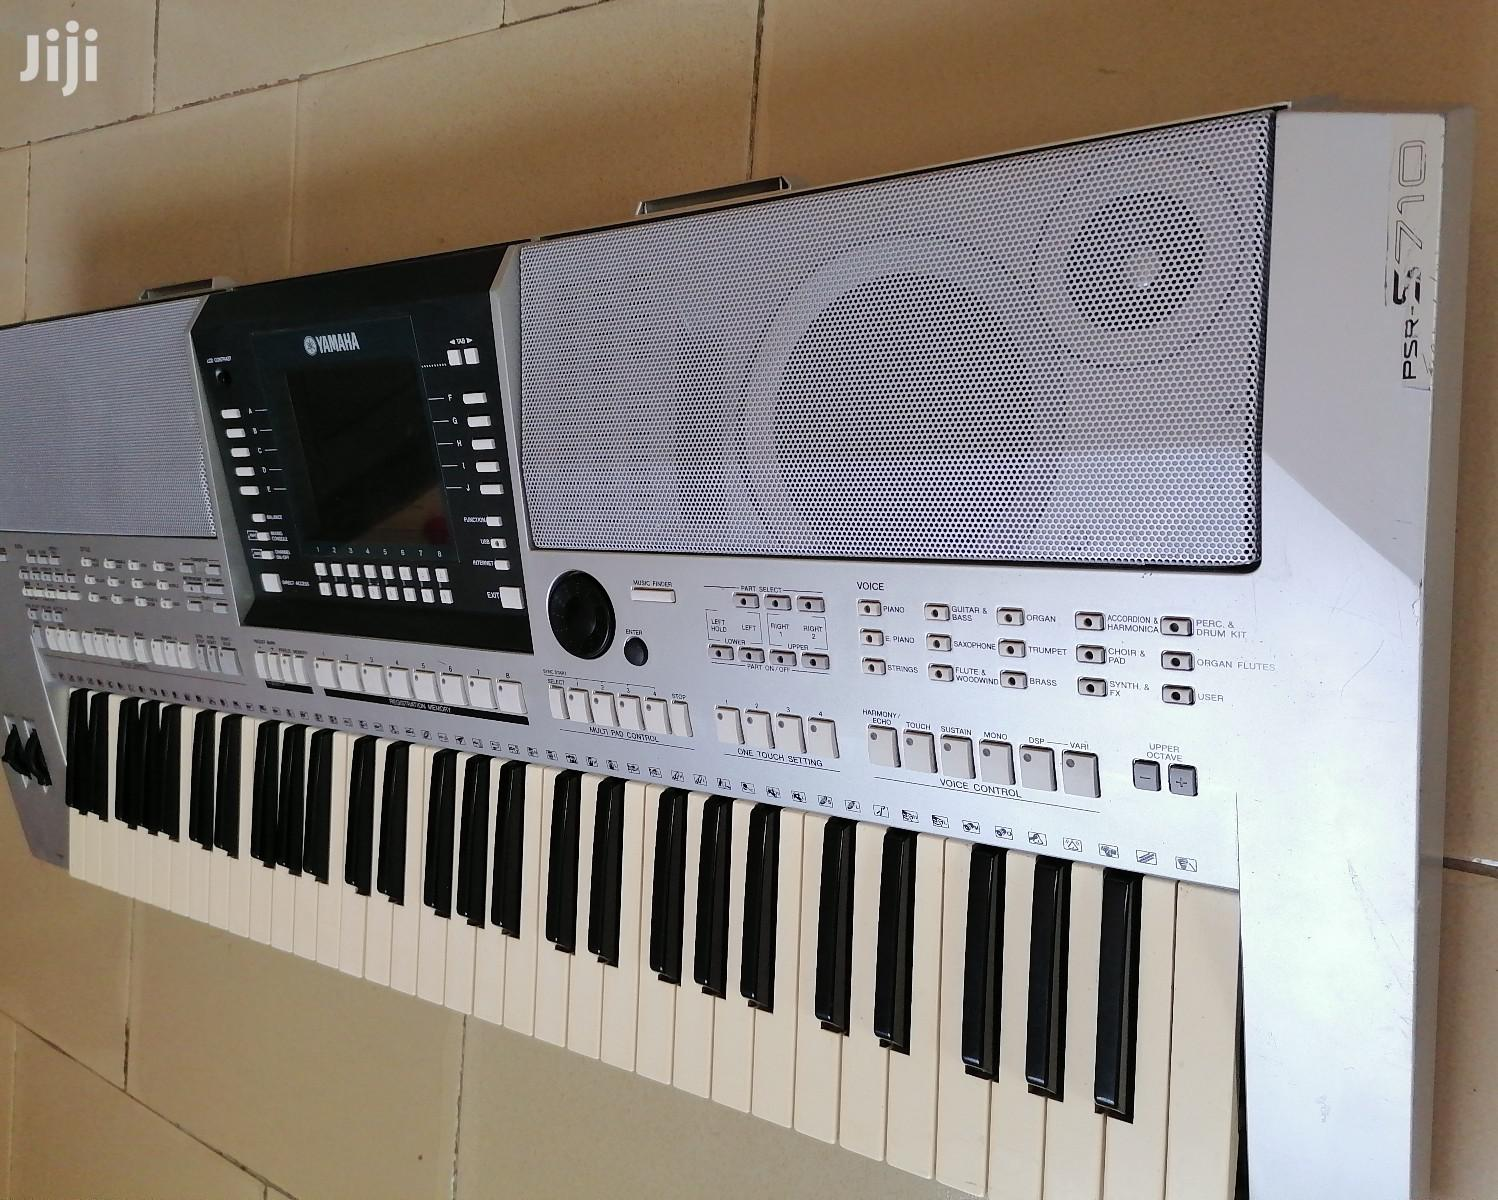 YAMAHA PSR-S710 Professional Electronic Keyboard   Musical Instruments & Gear for sale in Teshie-Nungua Estates, Greater Accra, Ghana